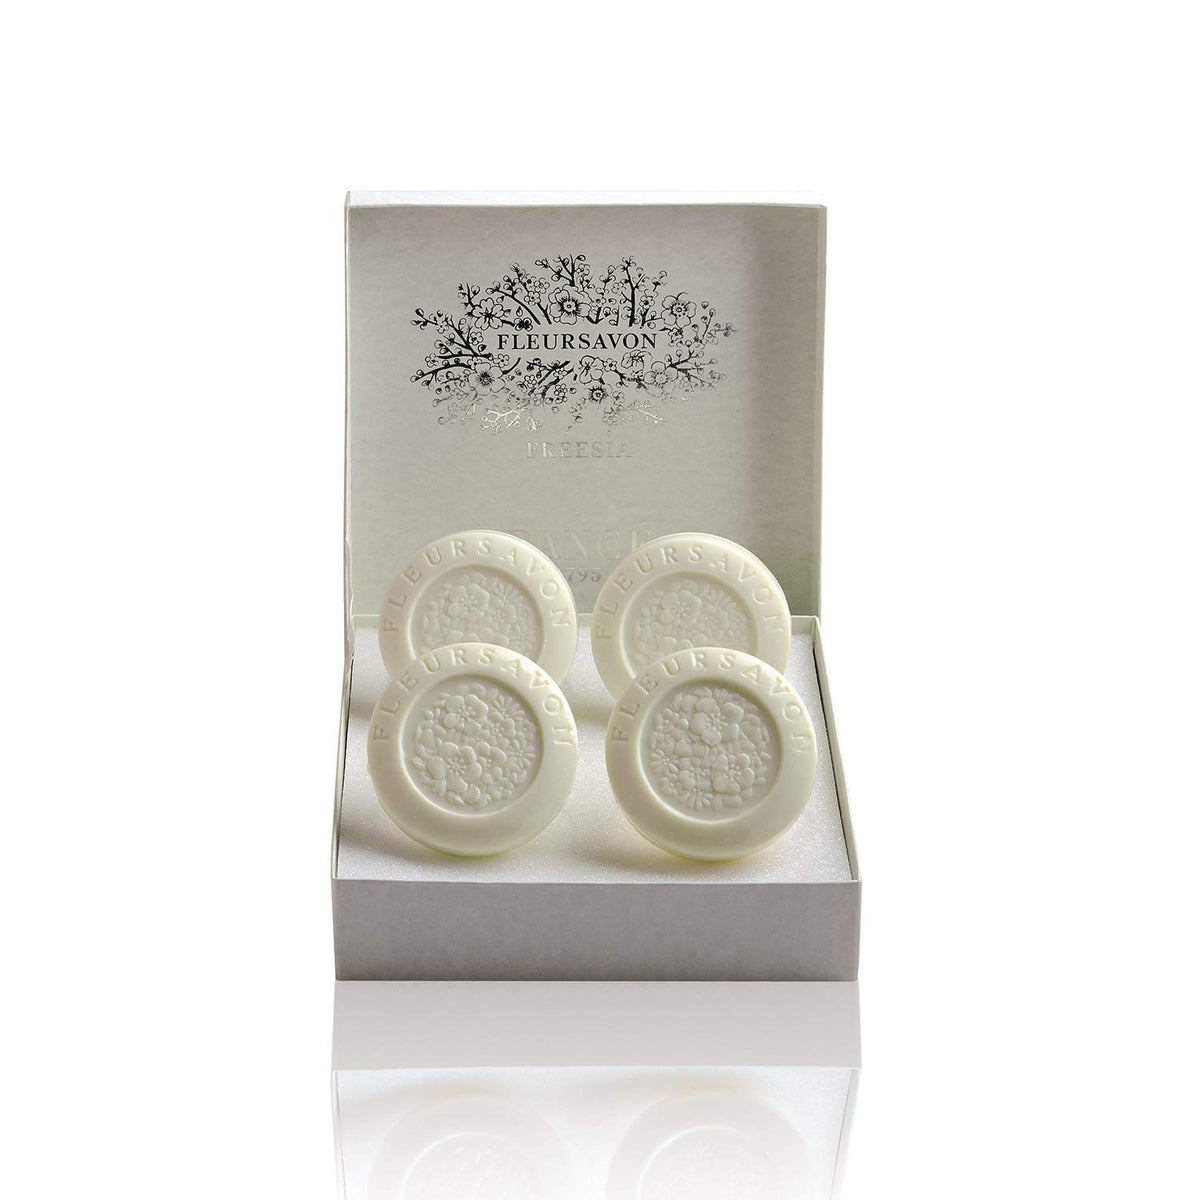 Rance Soaps Freesia Soap Box-Rance Soaps-Oak Manor Fragrances